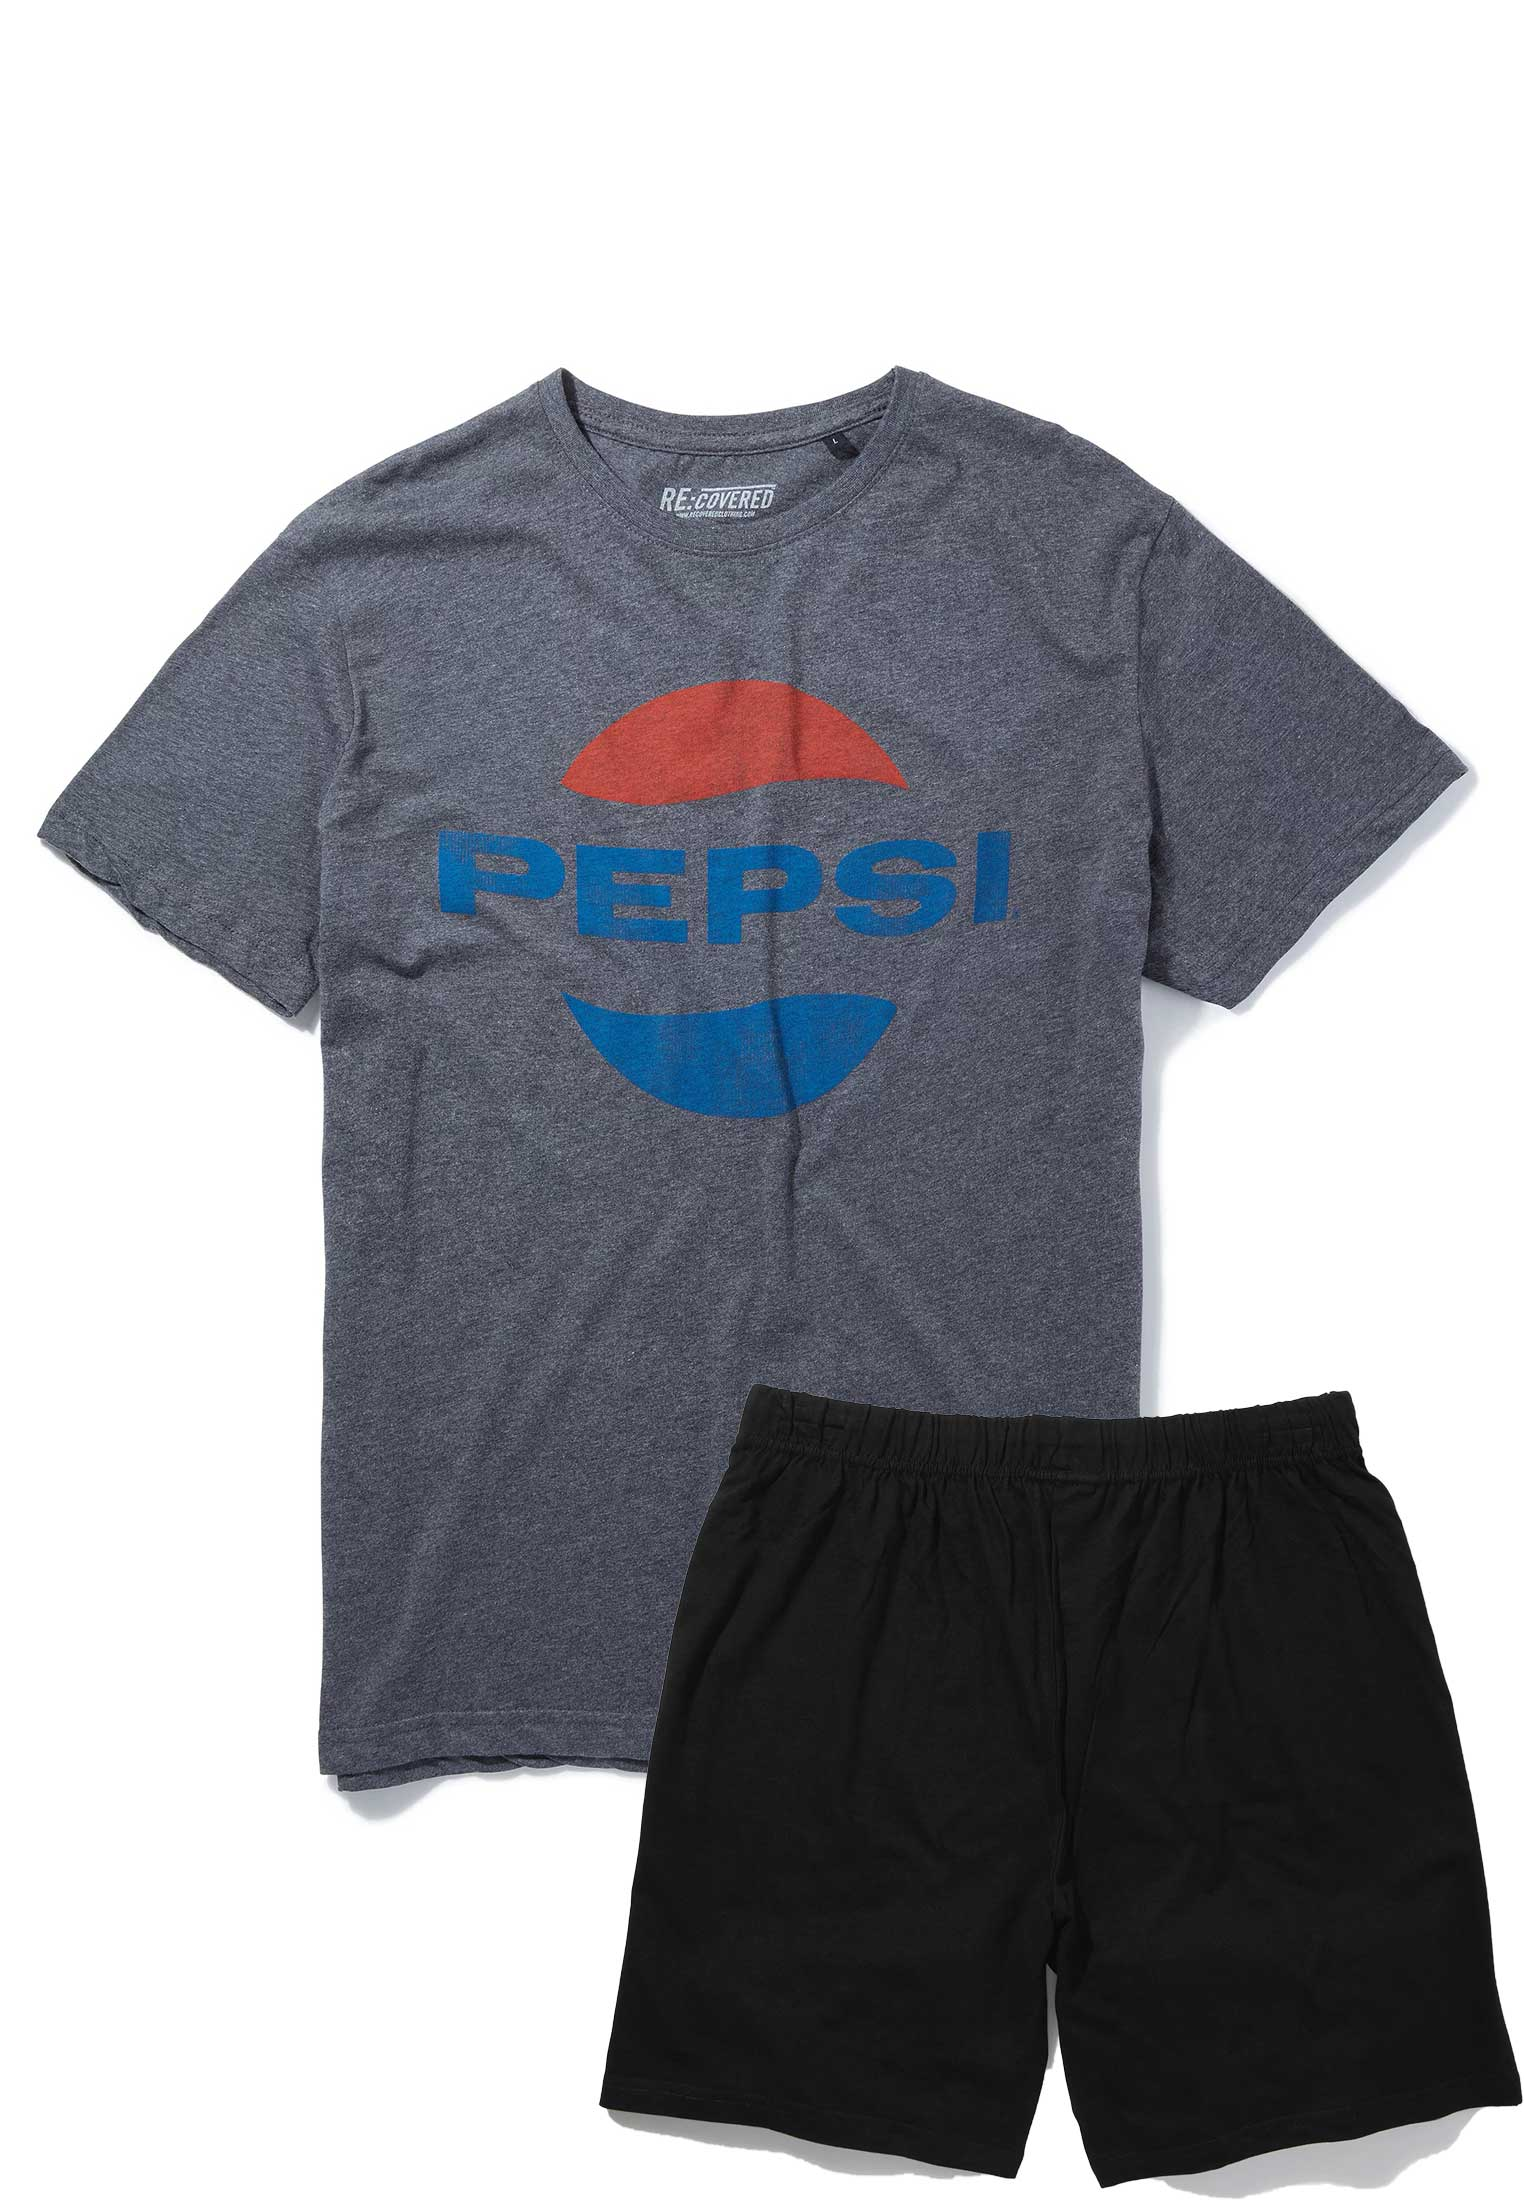 Pepsi Classic Oval Logo Charcoal & Black Pyjama Set by Re:Covered